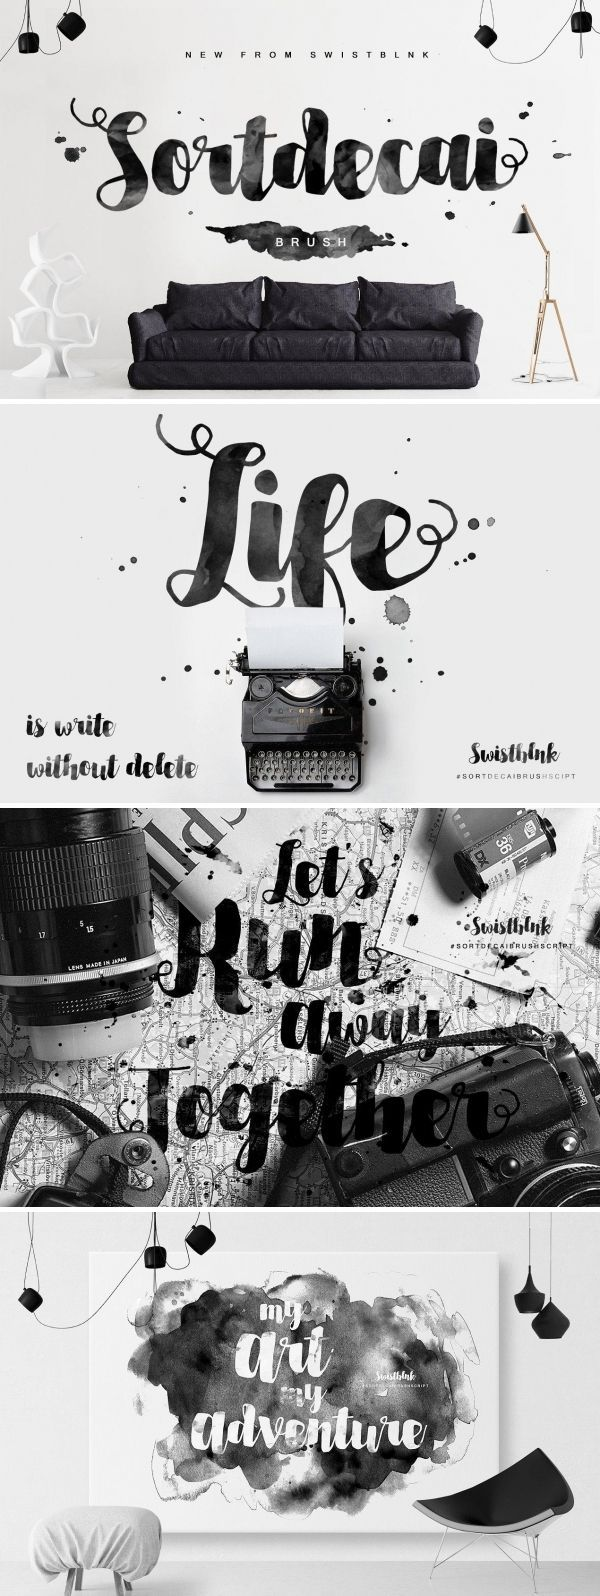 Introducing our new Sortdecai Brush Script, Sortdecai Brush Script is another hand lettered modern brush script typefaces, which is combining the style of classic calligraphy with an modern style. Sortdecai Brush Script is a part of Sortdecai Family. #font #typeface #typegang #typespire #typematters #type #fontdesign #typography #graphicdesign #typographyinspire #script #bold #handmadefont